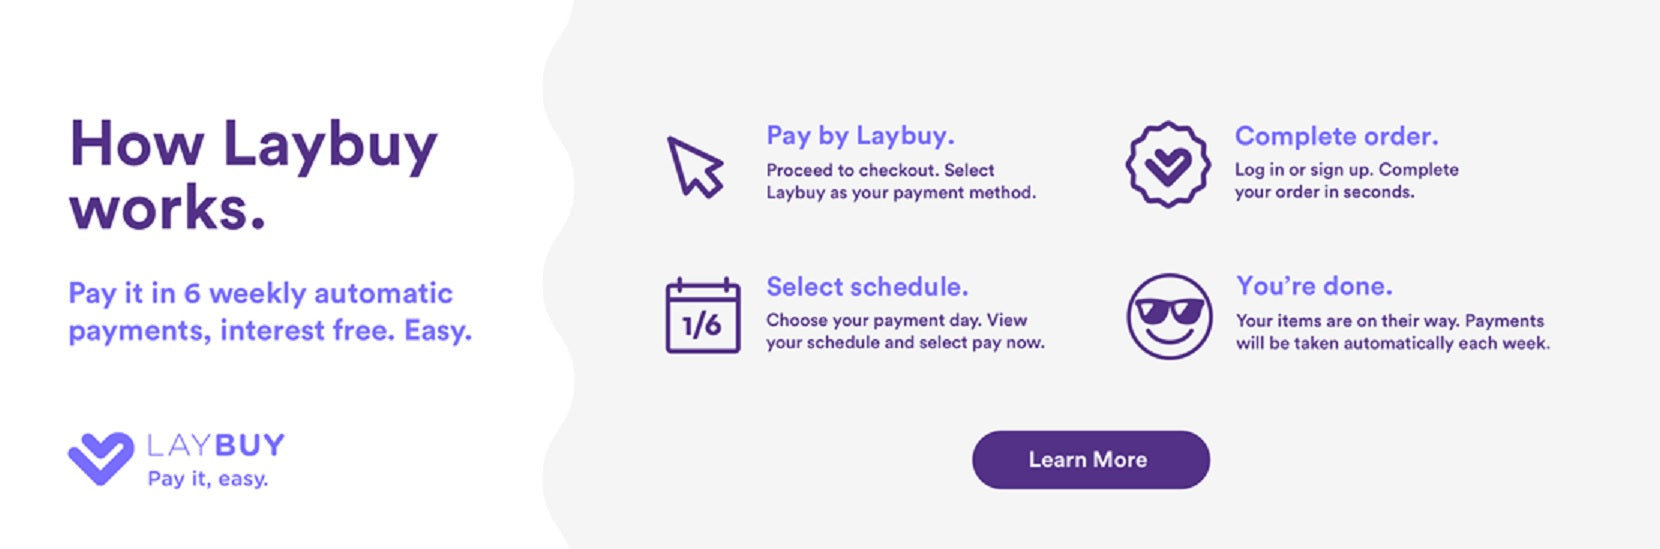 Laybuy - shop now pay later